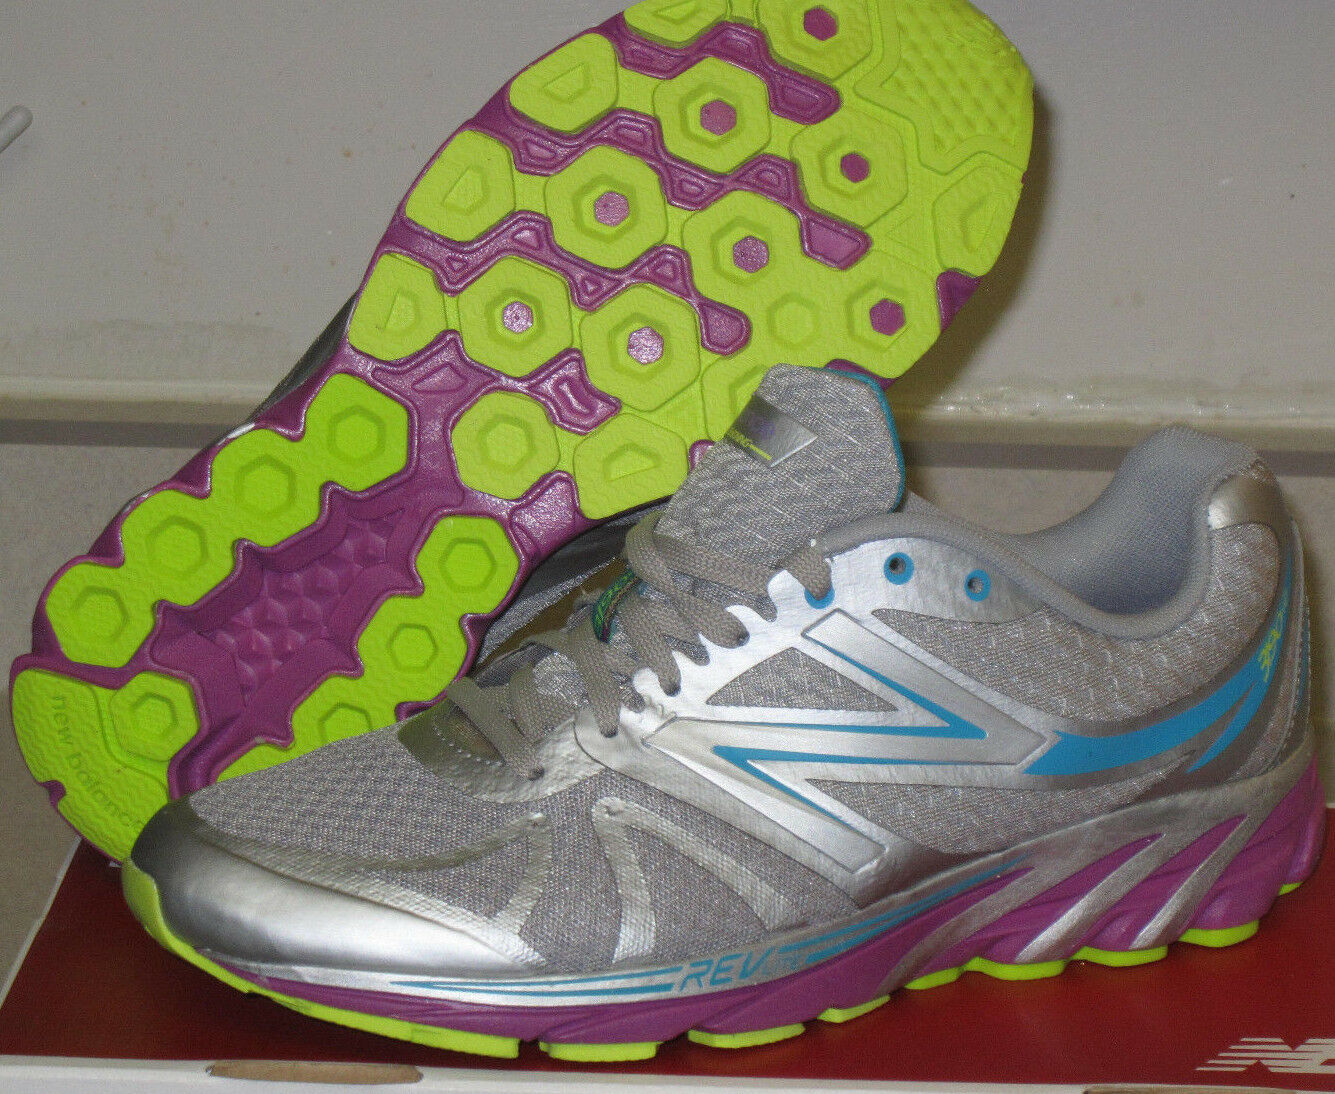 NEW BALANCE MADE IN USA 3190v2 RUNNING SHOES WOMEN'S SIZE 7